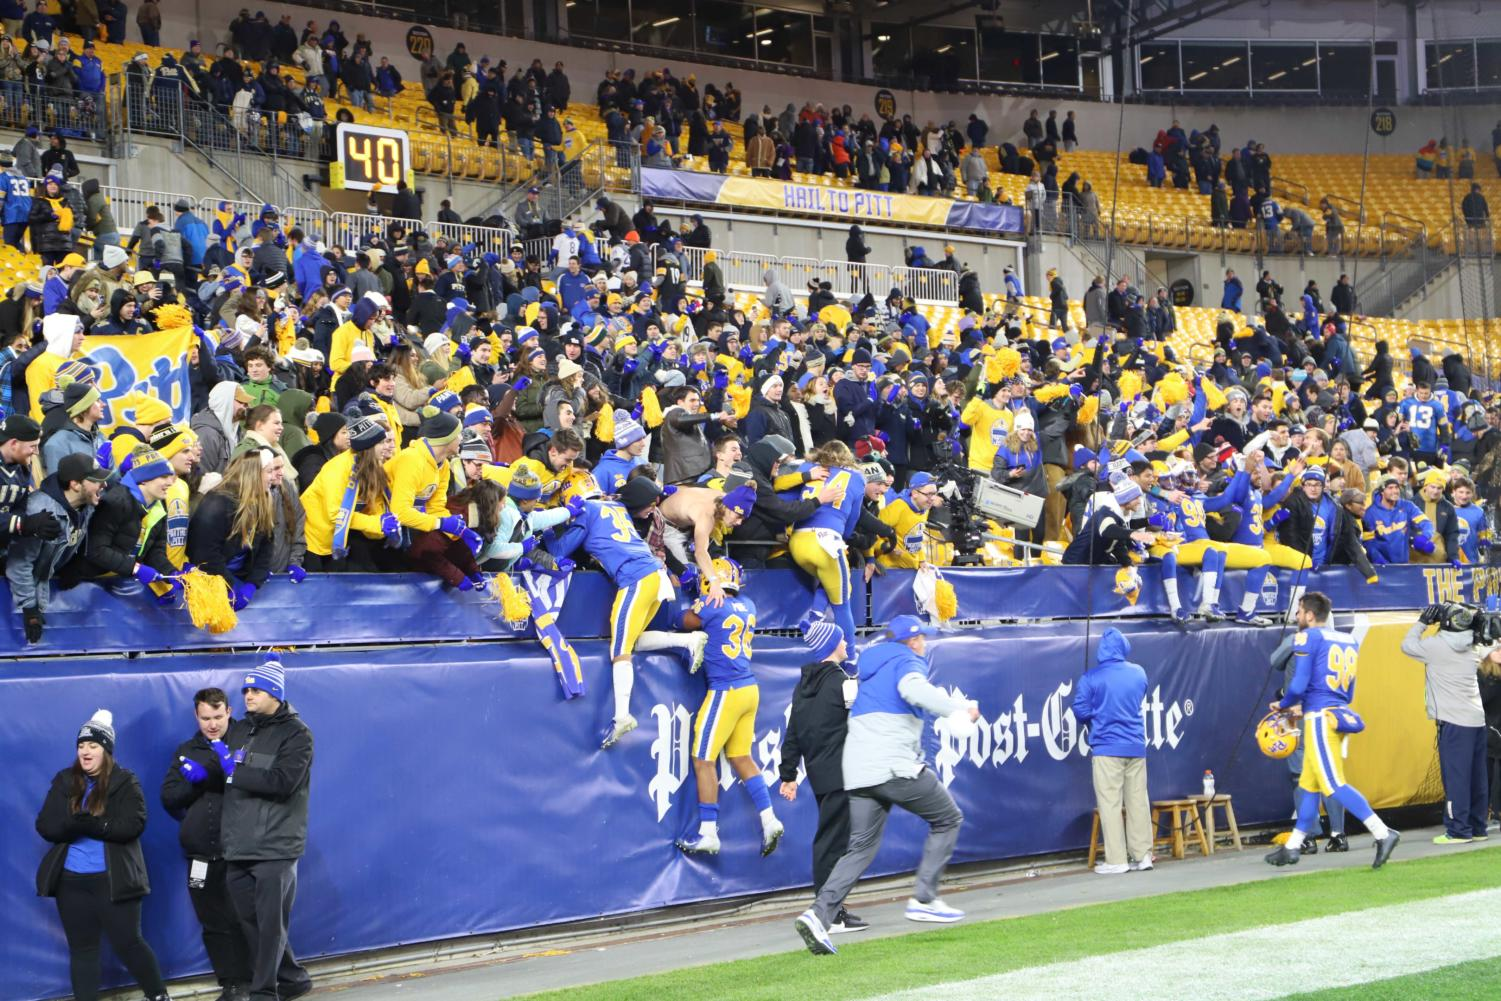 Pitt's players celebrate in the student section after beating North Carolina on Thursday night.